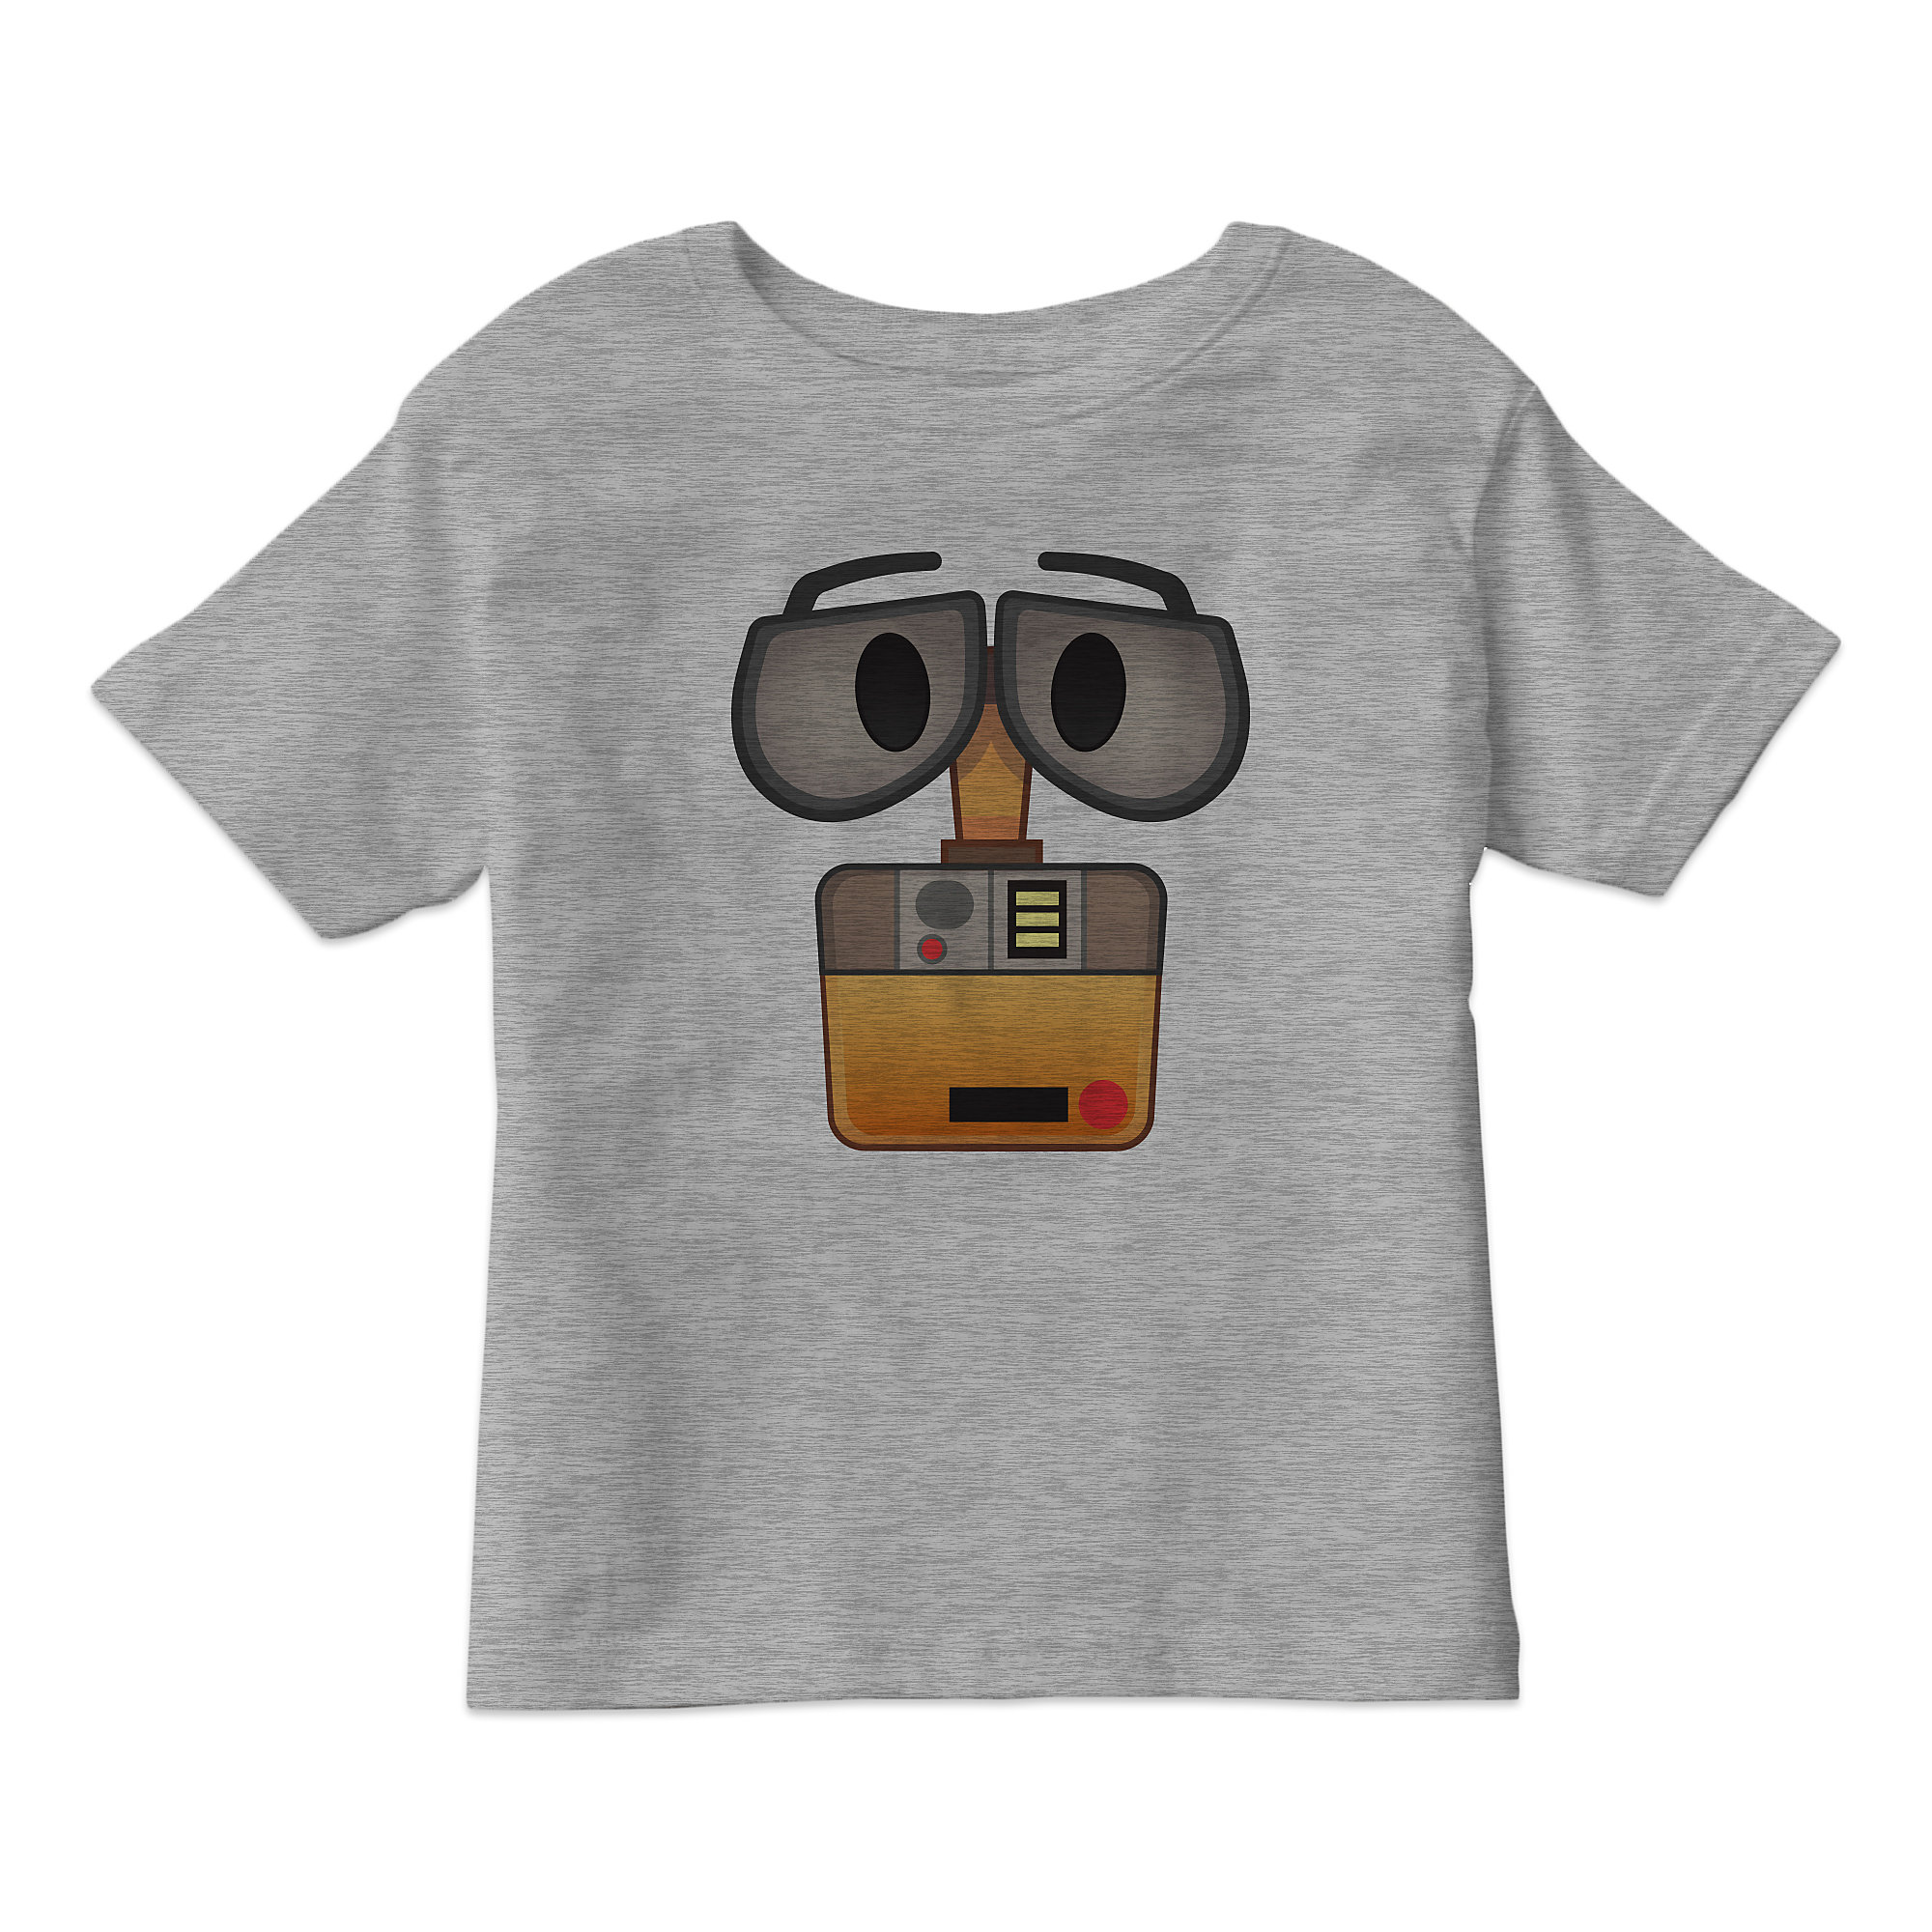 WALL•E Emoji Tee for Kids - Customizable